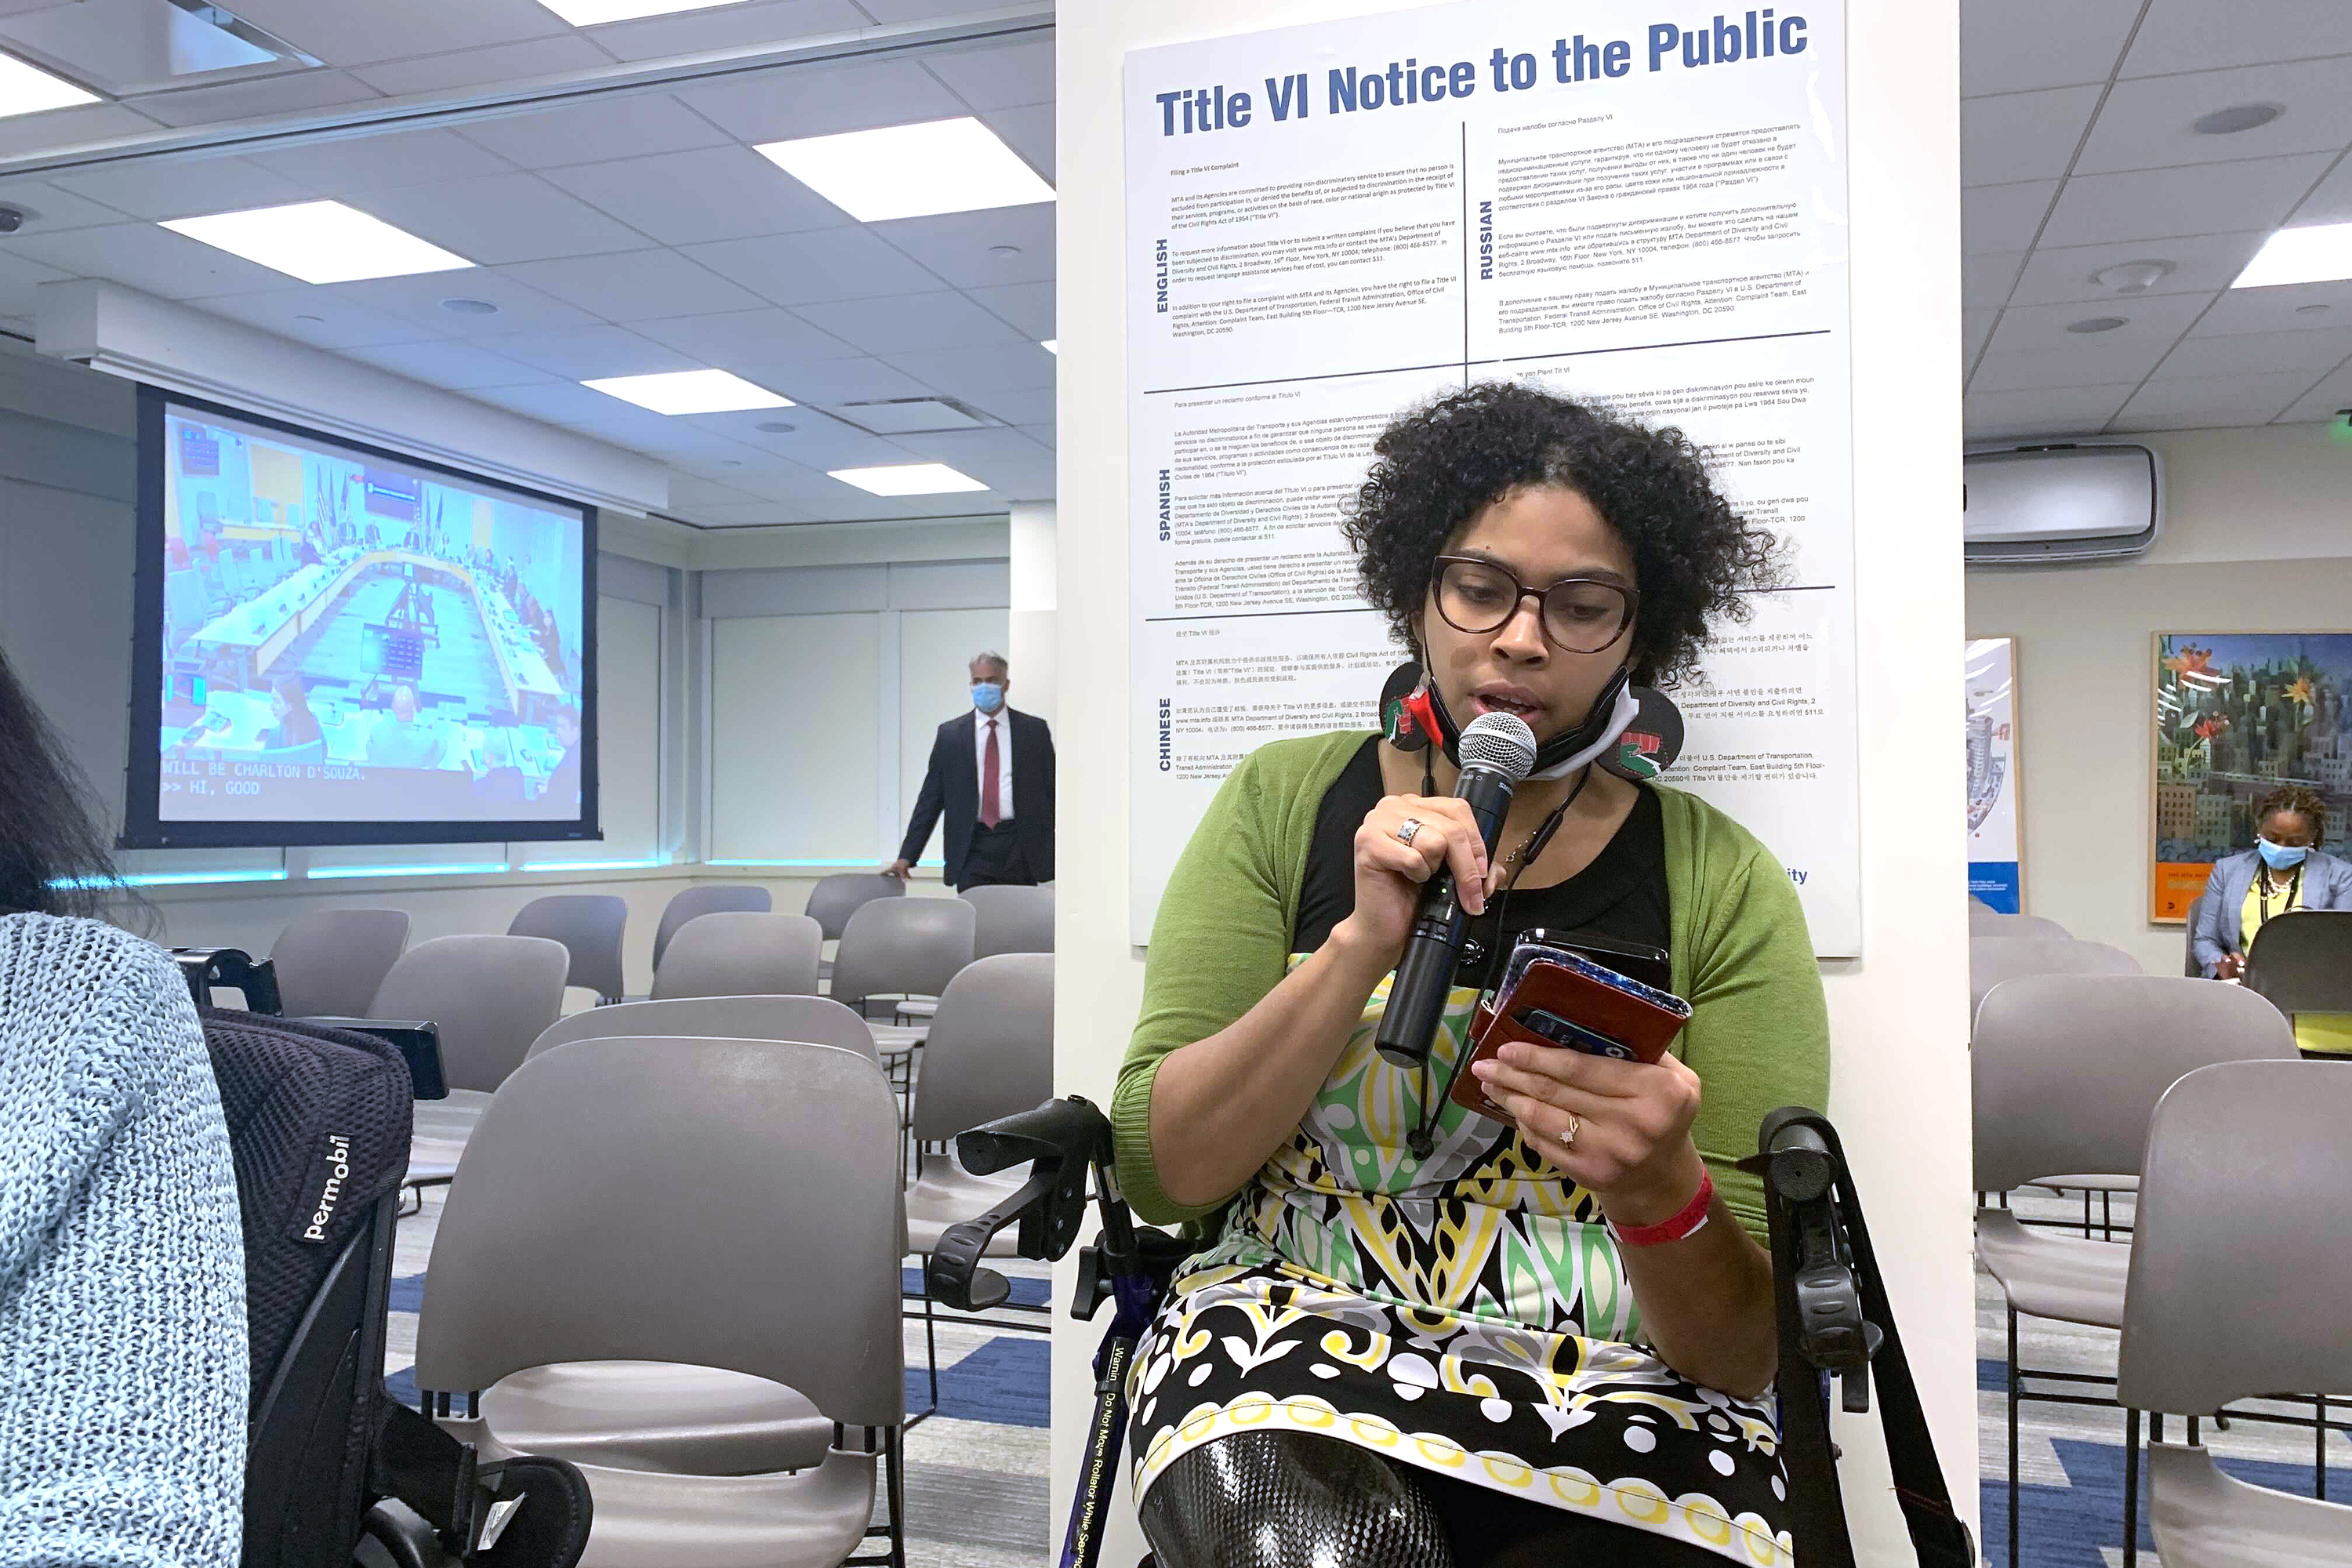 Eman Rimawi, an Access-A-Ride campaign coordinator for New York Lawyers for the Public Interest, speaks at an MTA committee meeting in Manhattan on July 19, 2021.